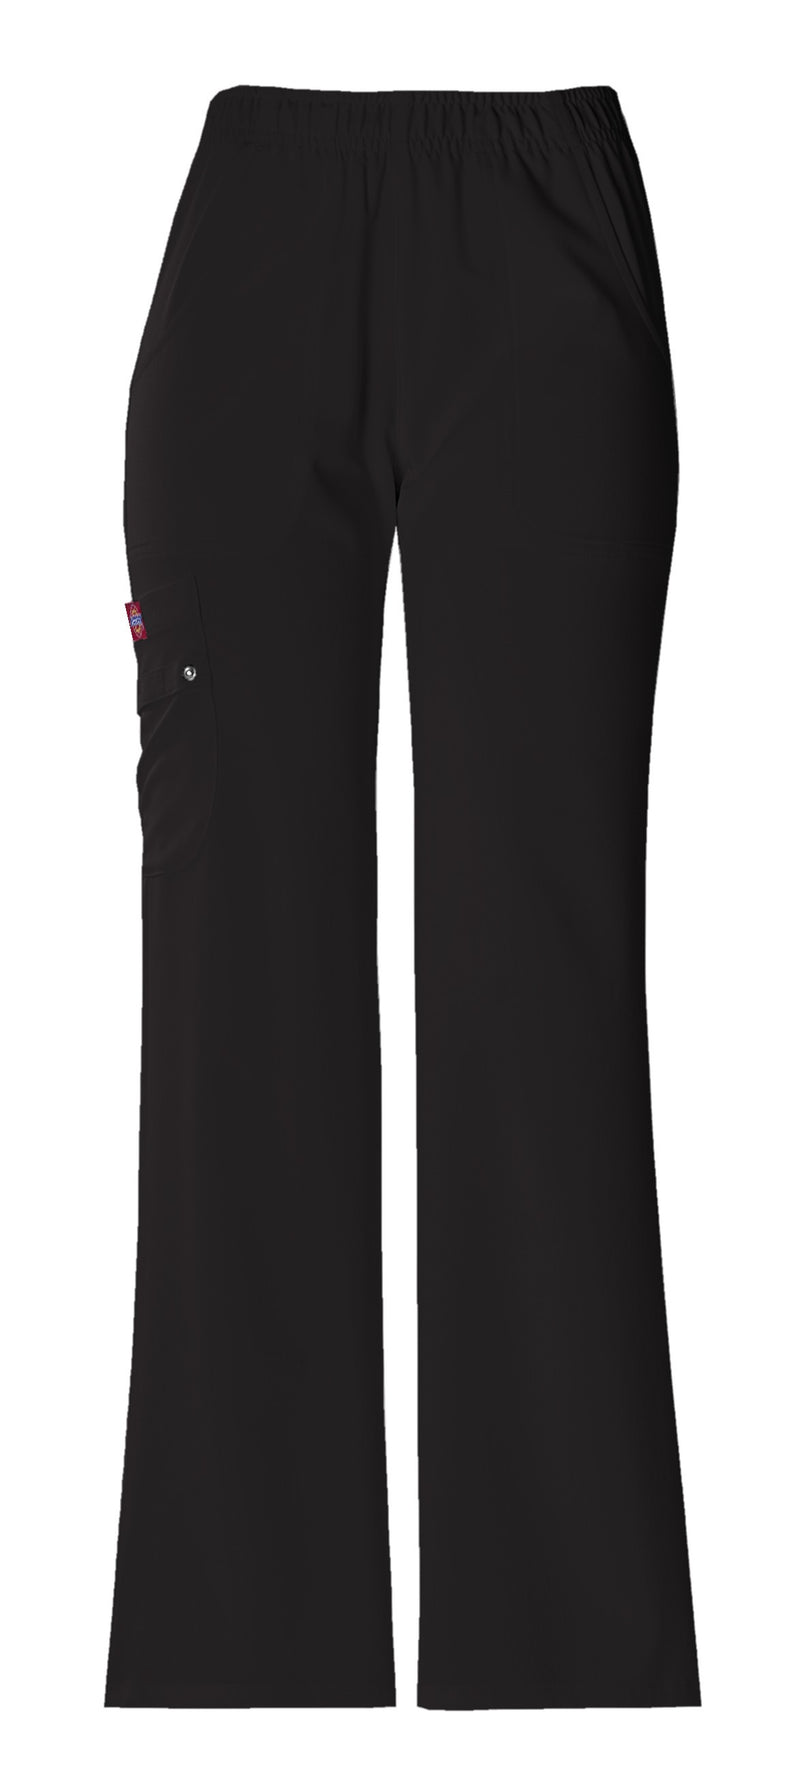 Dickies Women's Xtreme Stretch Elastic Waist Scrubs Pant 82012